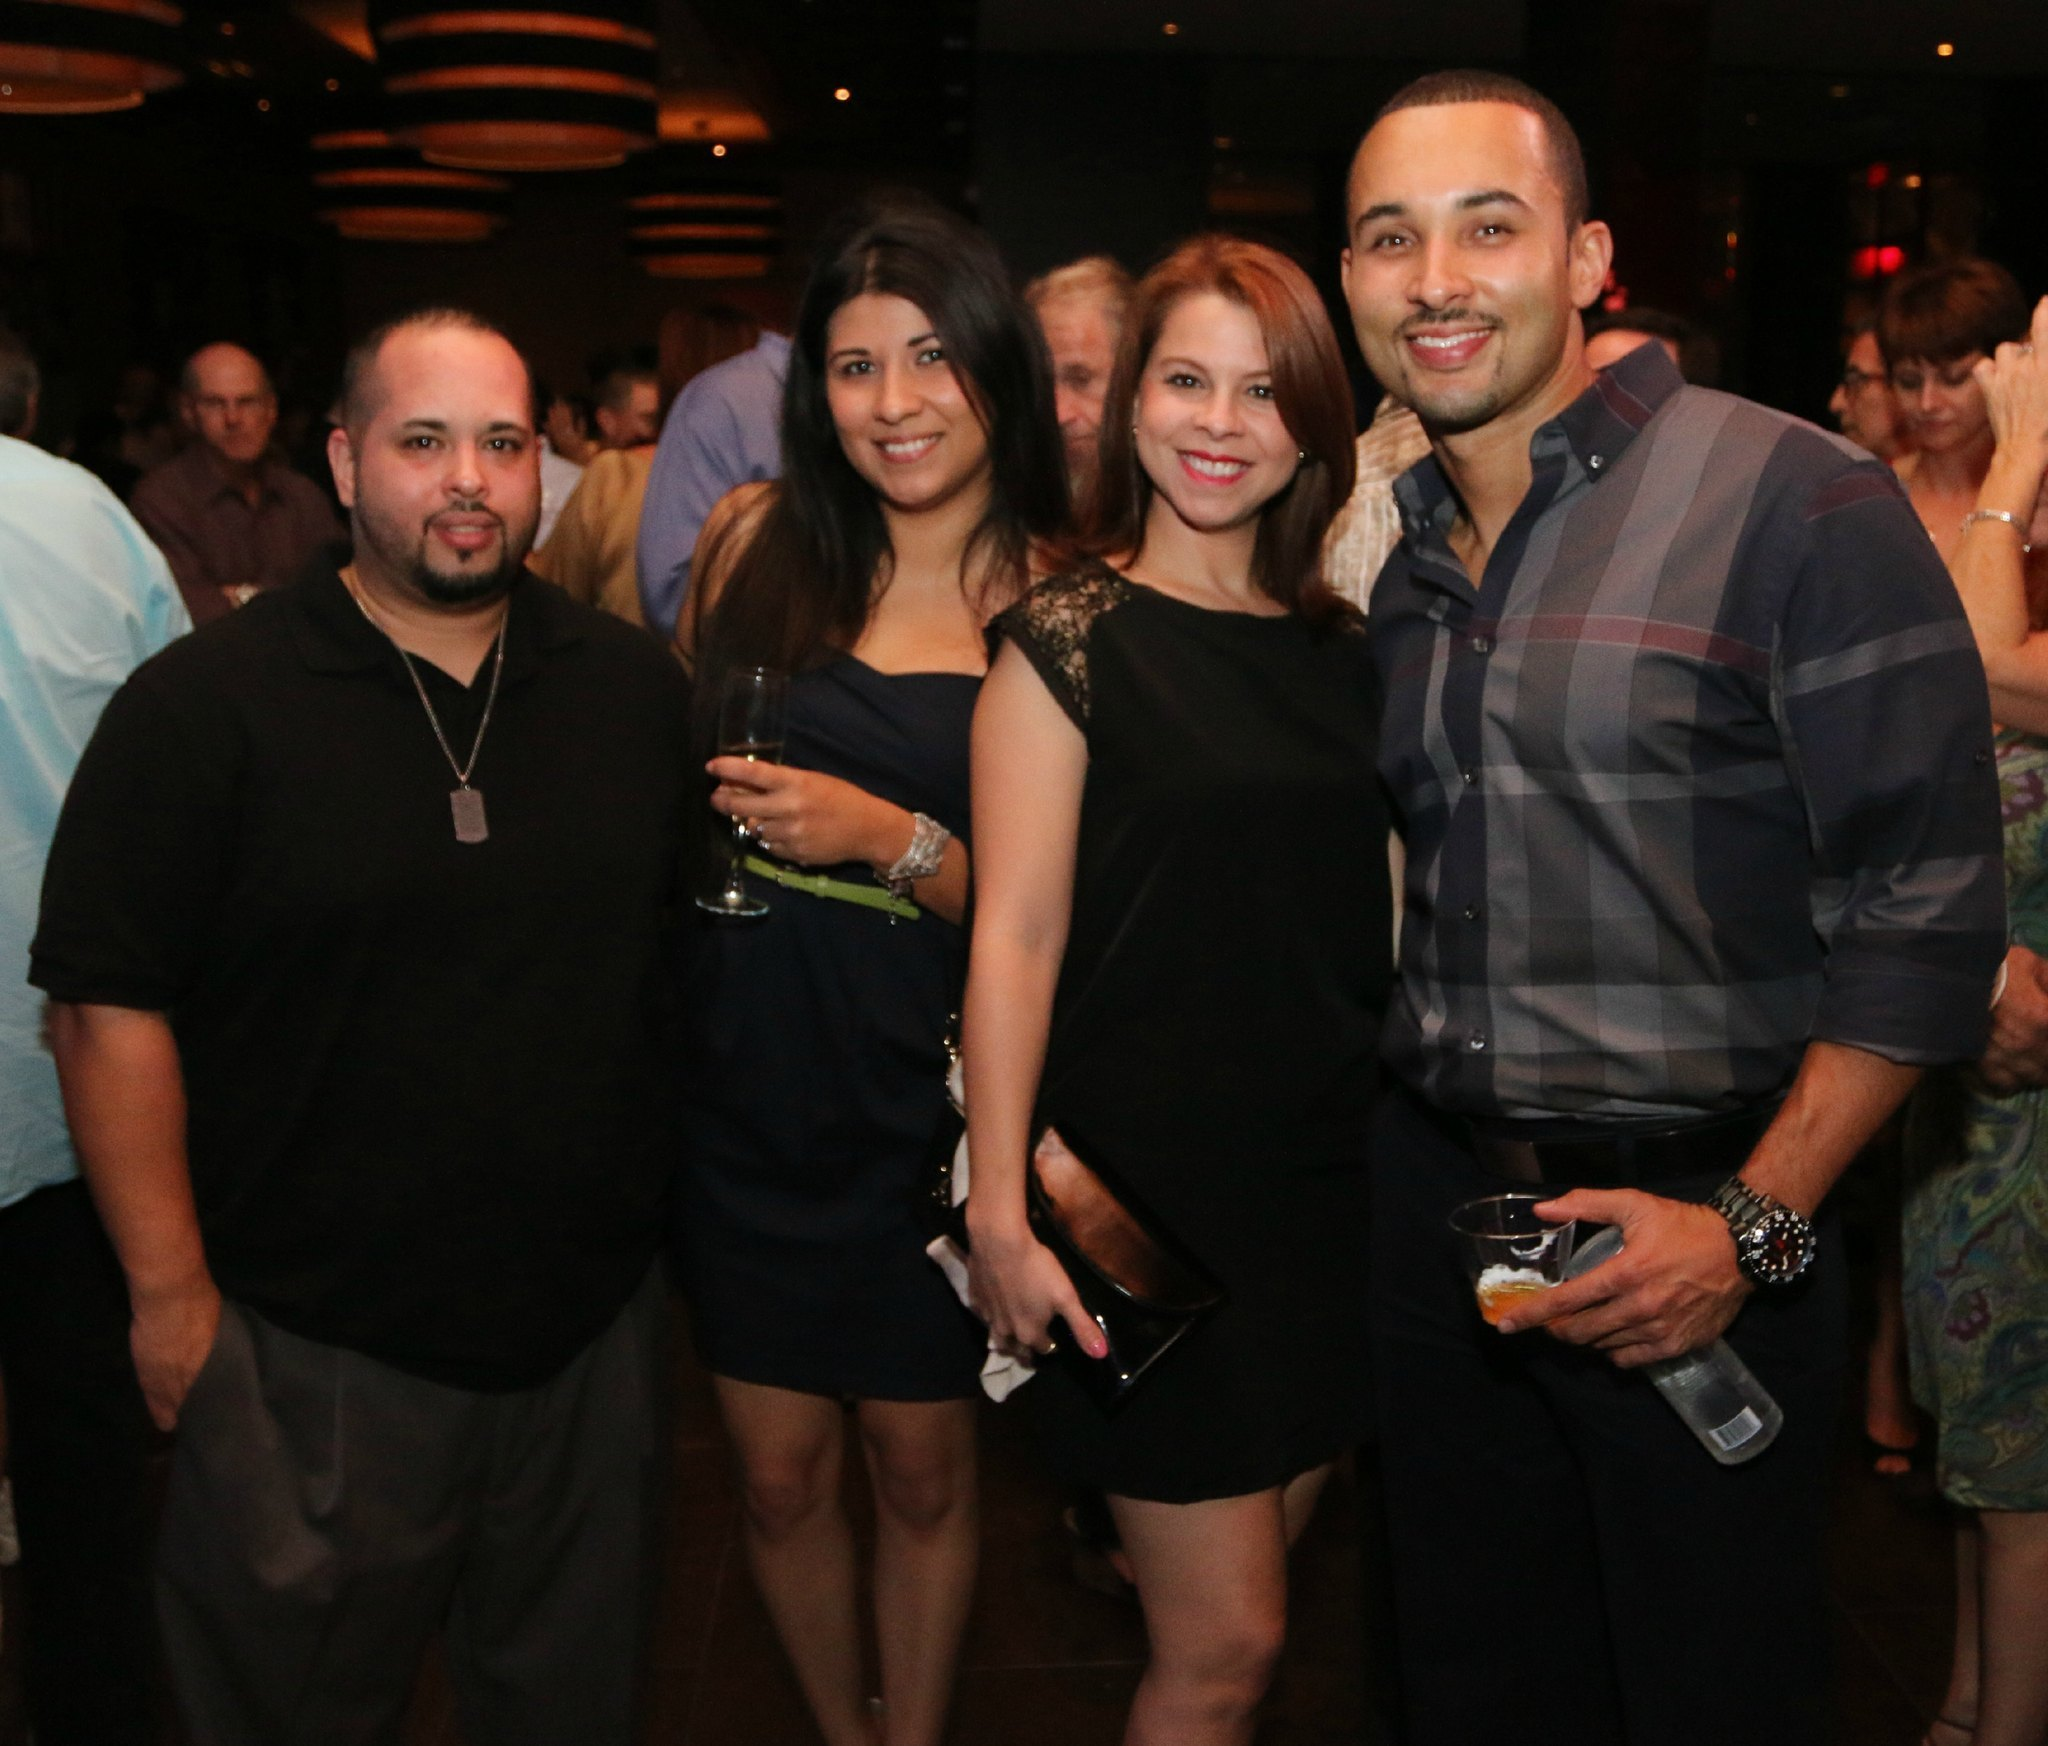 Jazziz Nightlife Grand Opening Party - Chrstian Rivera, Nadia Torres, Nicole Velazquez and Dennis Morel